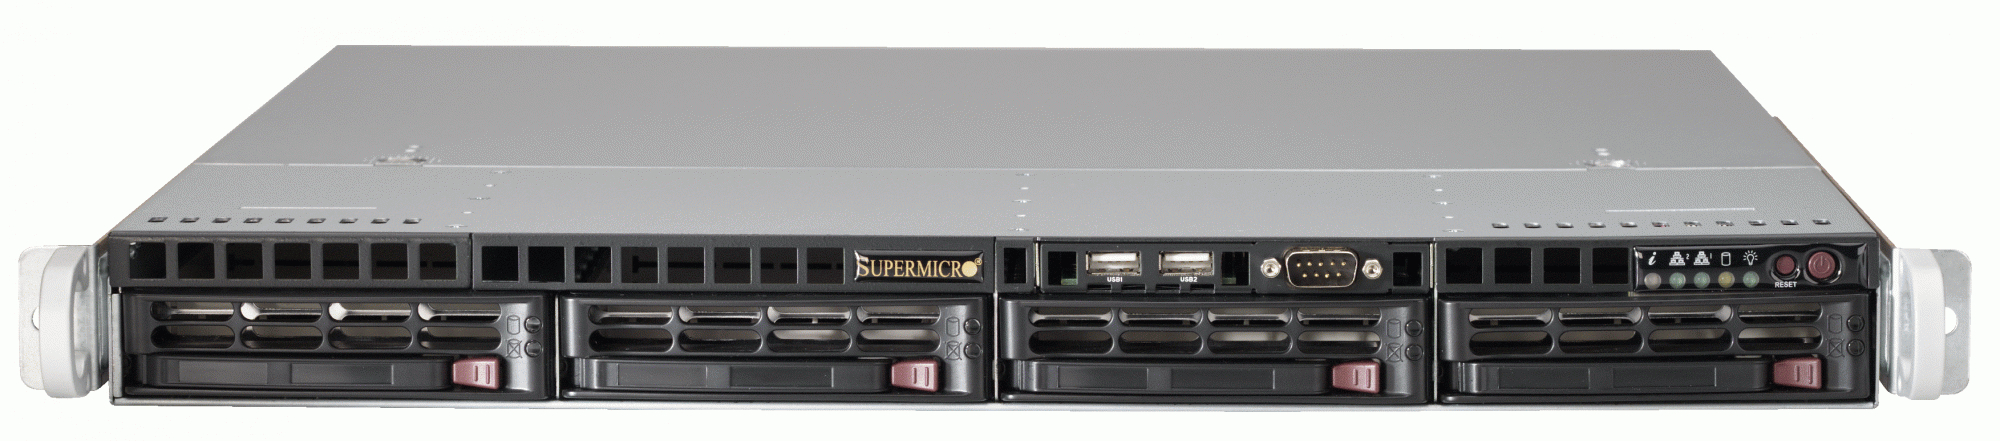 Серверная платформа Supermicro A+ Server 1012G-MTF (AS-1012G-MTF) - корпус Rackmount 1U, 4 отсека LFF 3.5